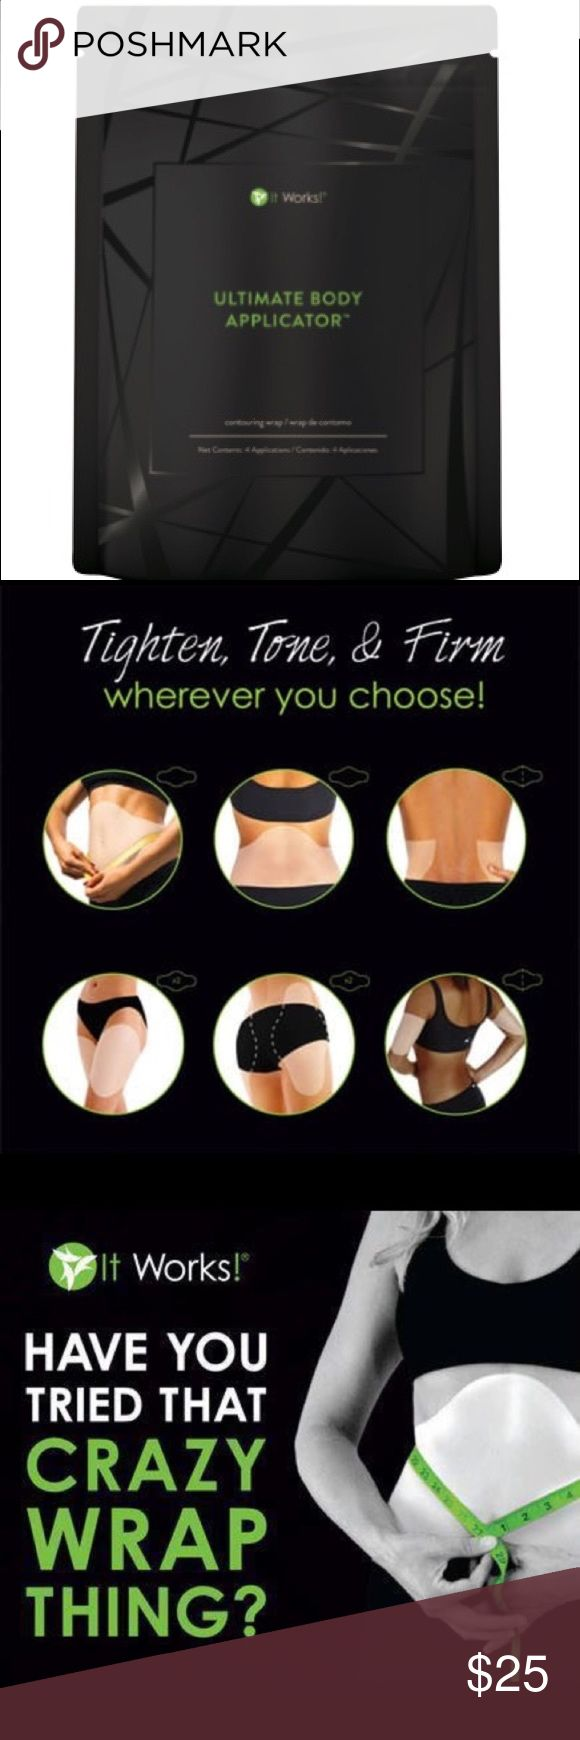 Skinny Wrap How do the wraps work?🤔  💚They are botanically infused, designed to tighten and tone your body.  💚They reduce cellulite, stretch marks, loose skin, and shrinks your fat cells.   Includes 1 body applicator & 40% off all other products 😍 Makeup